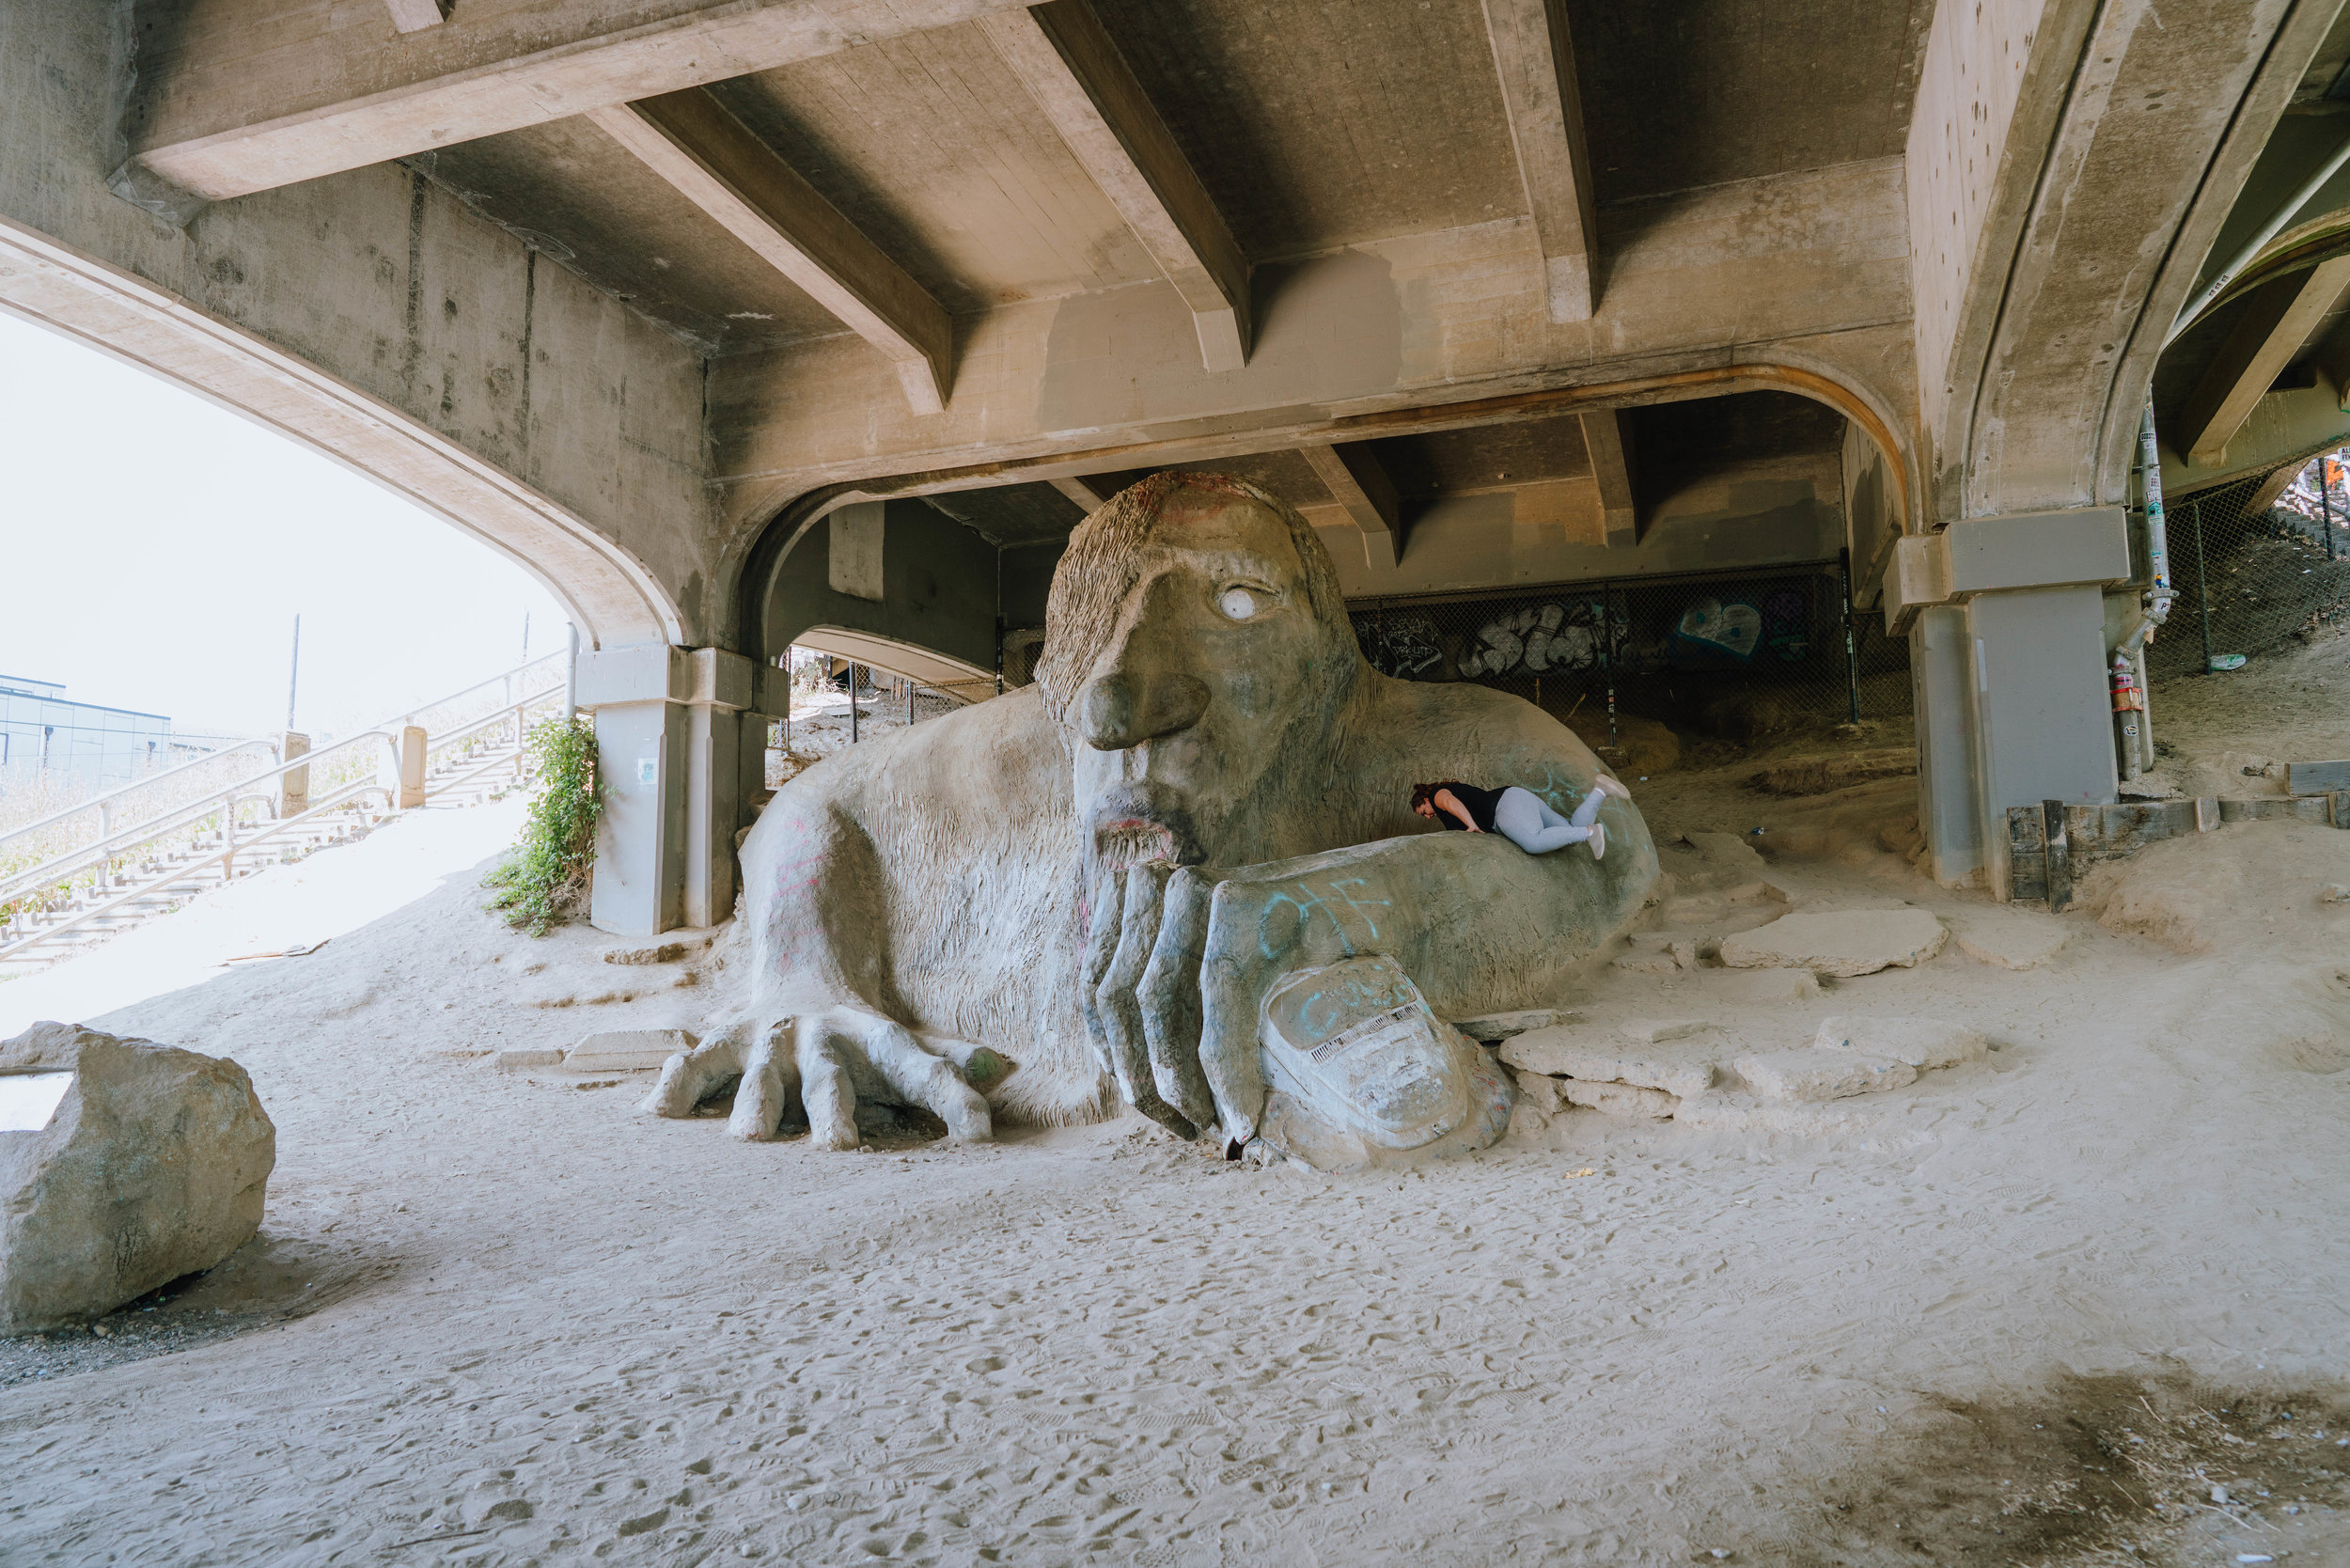 A tourist mantling the Fremont Troll in the Fremont neighborhood of Seattle, WA.